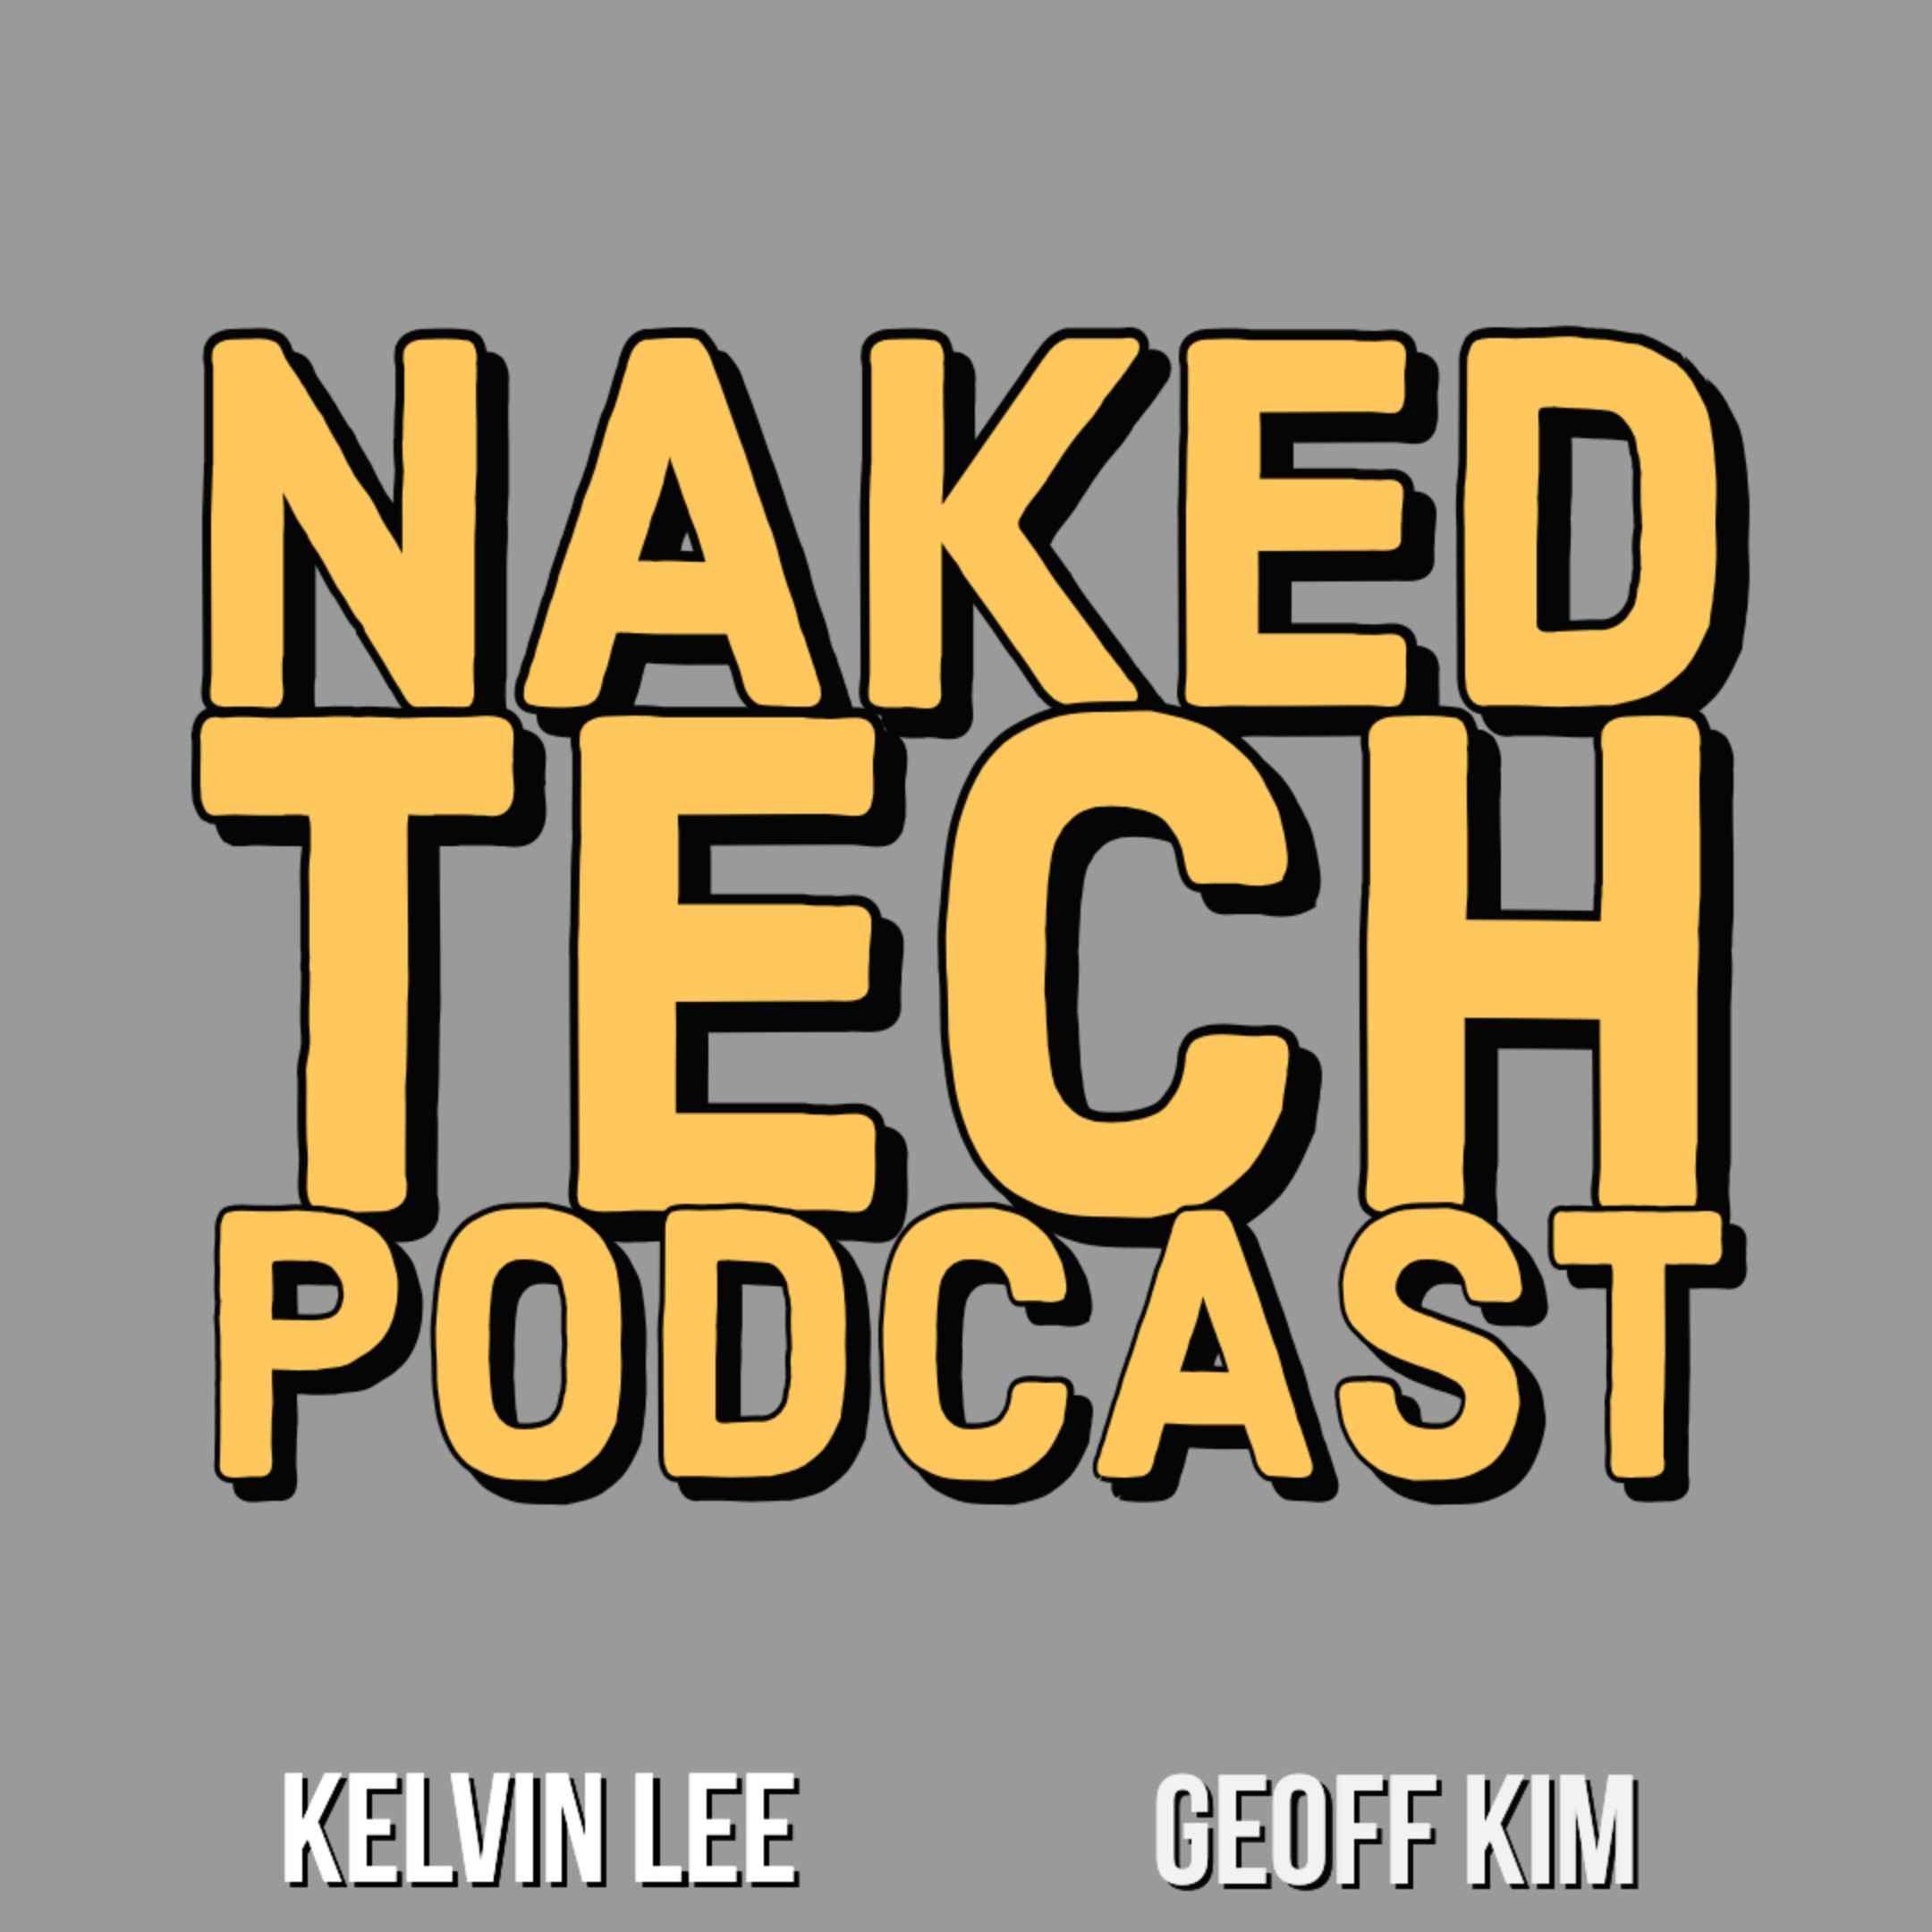 Naked Tech Podcast - Kelvin Lee, Geoff Kim